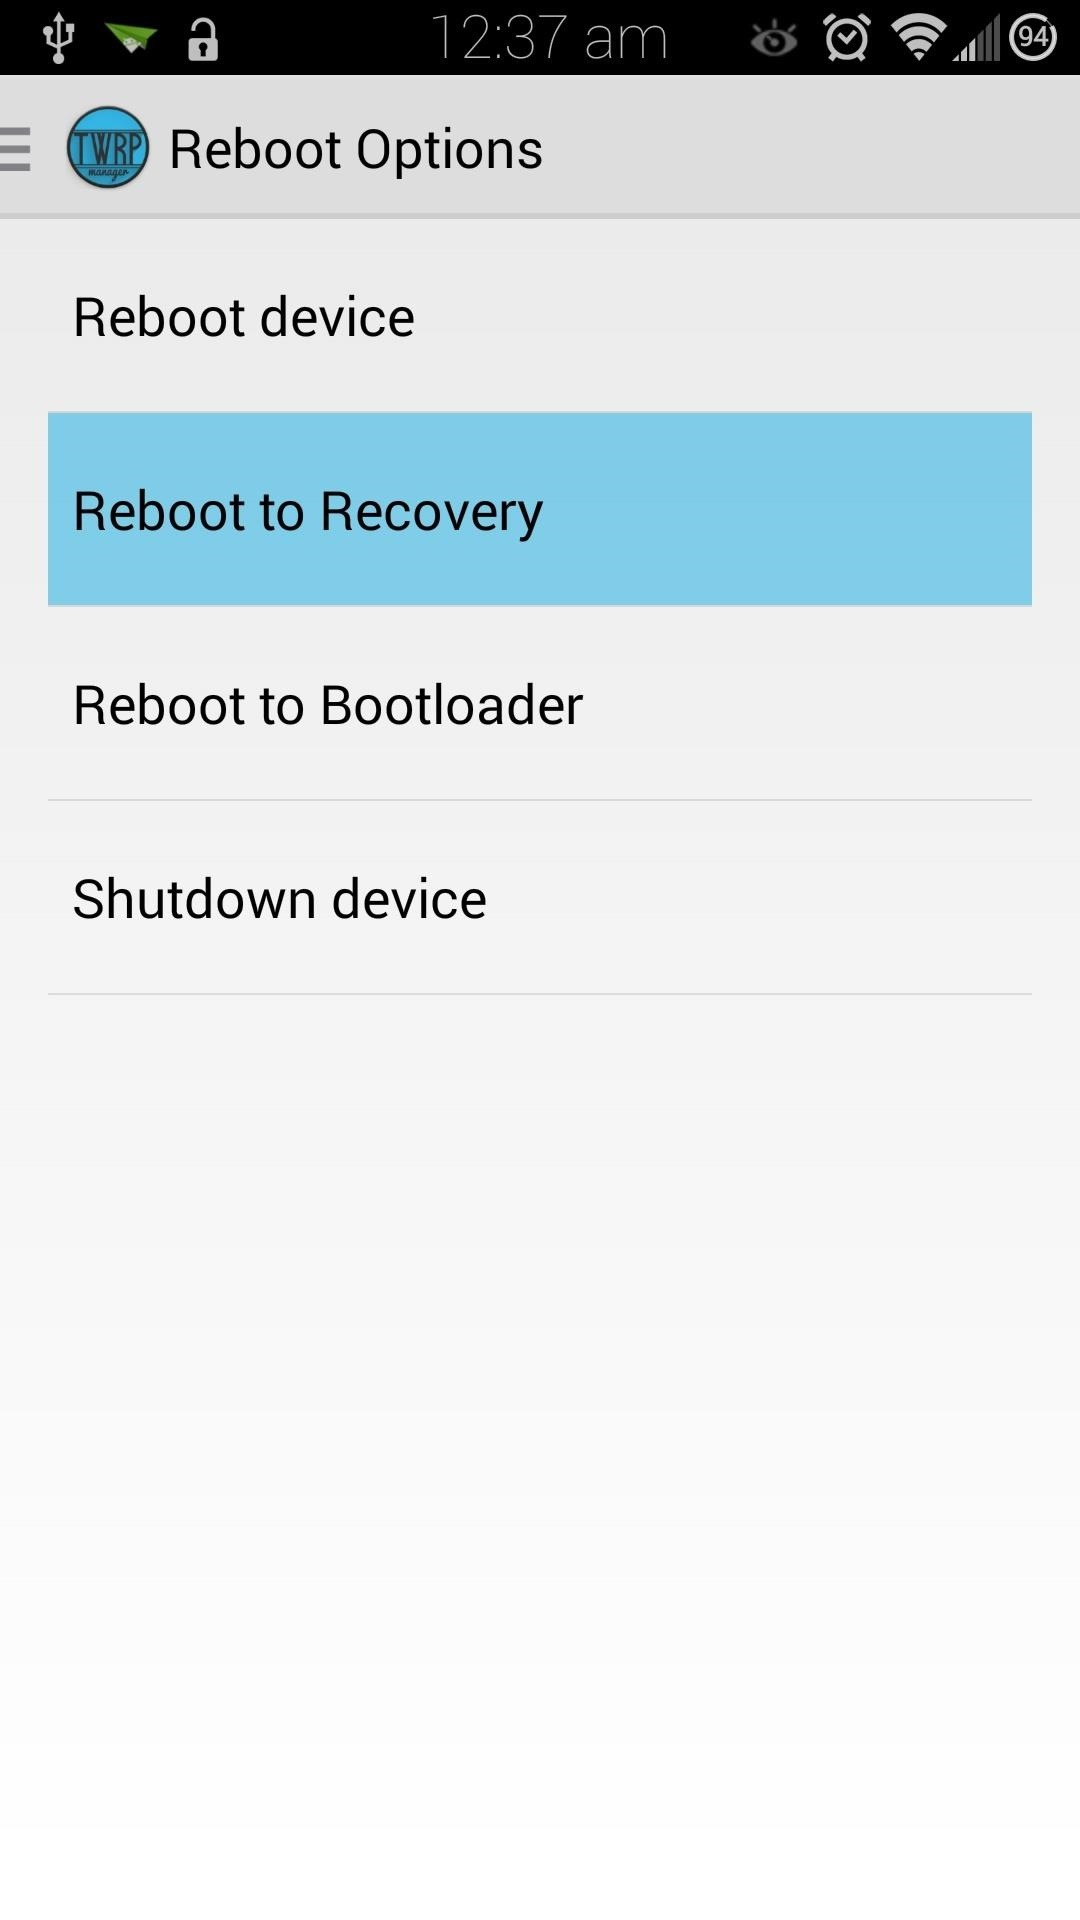 How to Install TWRP Recovery on Your Samsung Galaxy Note 3 (Sprint or T-Mobile)